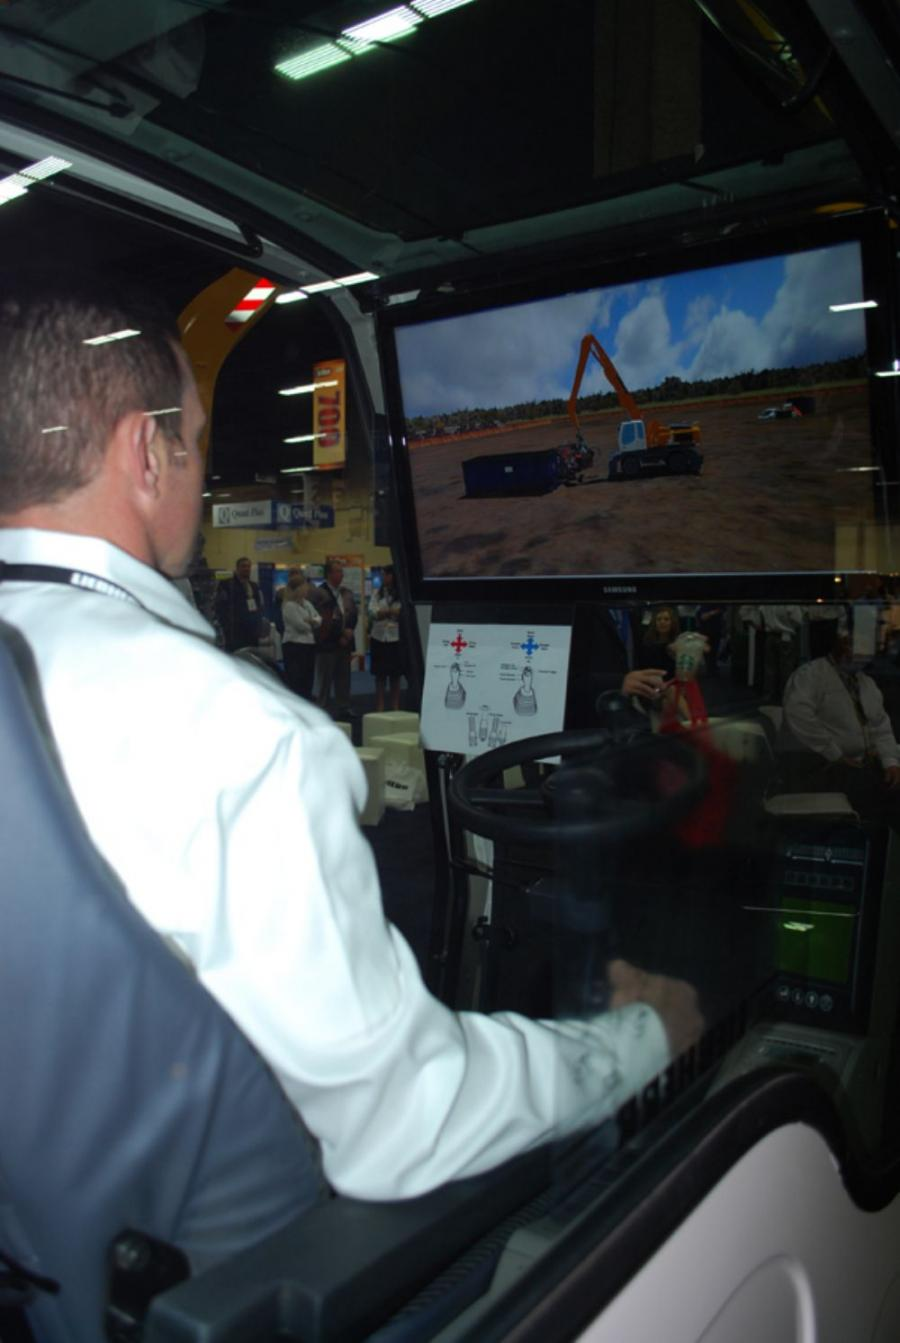 The simulator depicts the operation of a Liebherr wheeled material handler in a realistic environment performing scrap handling activities.